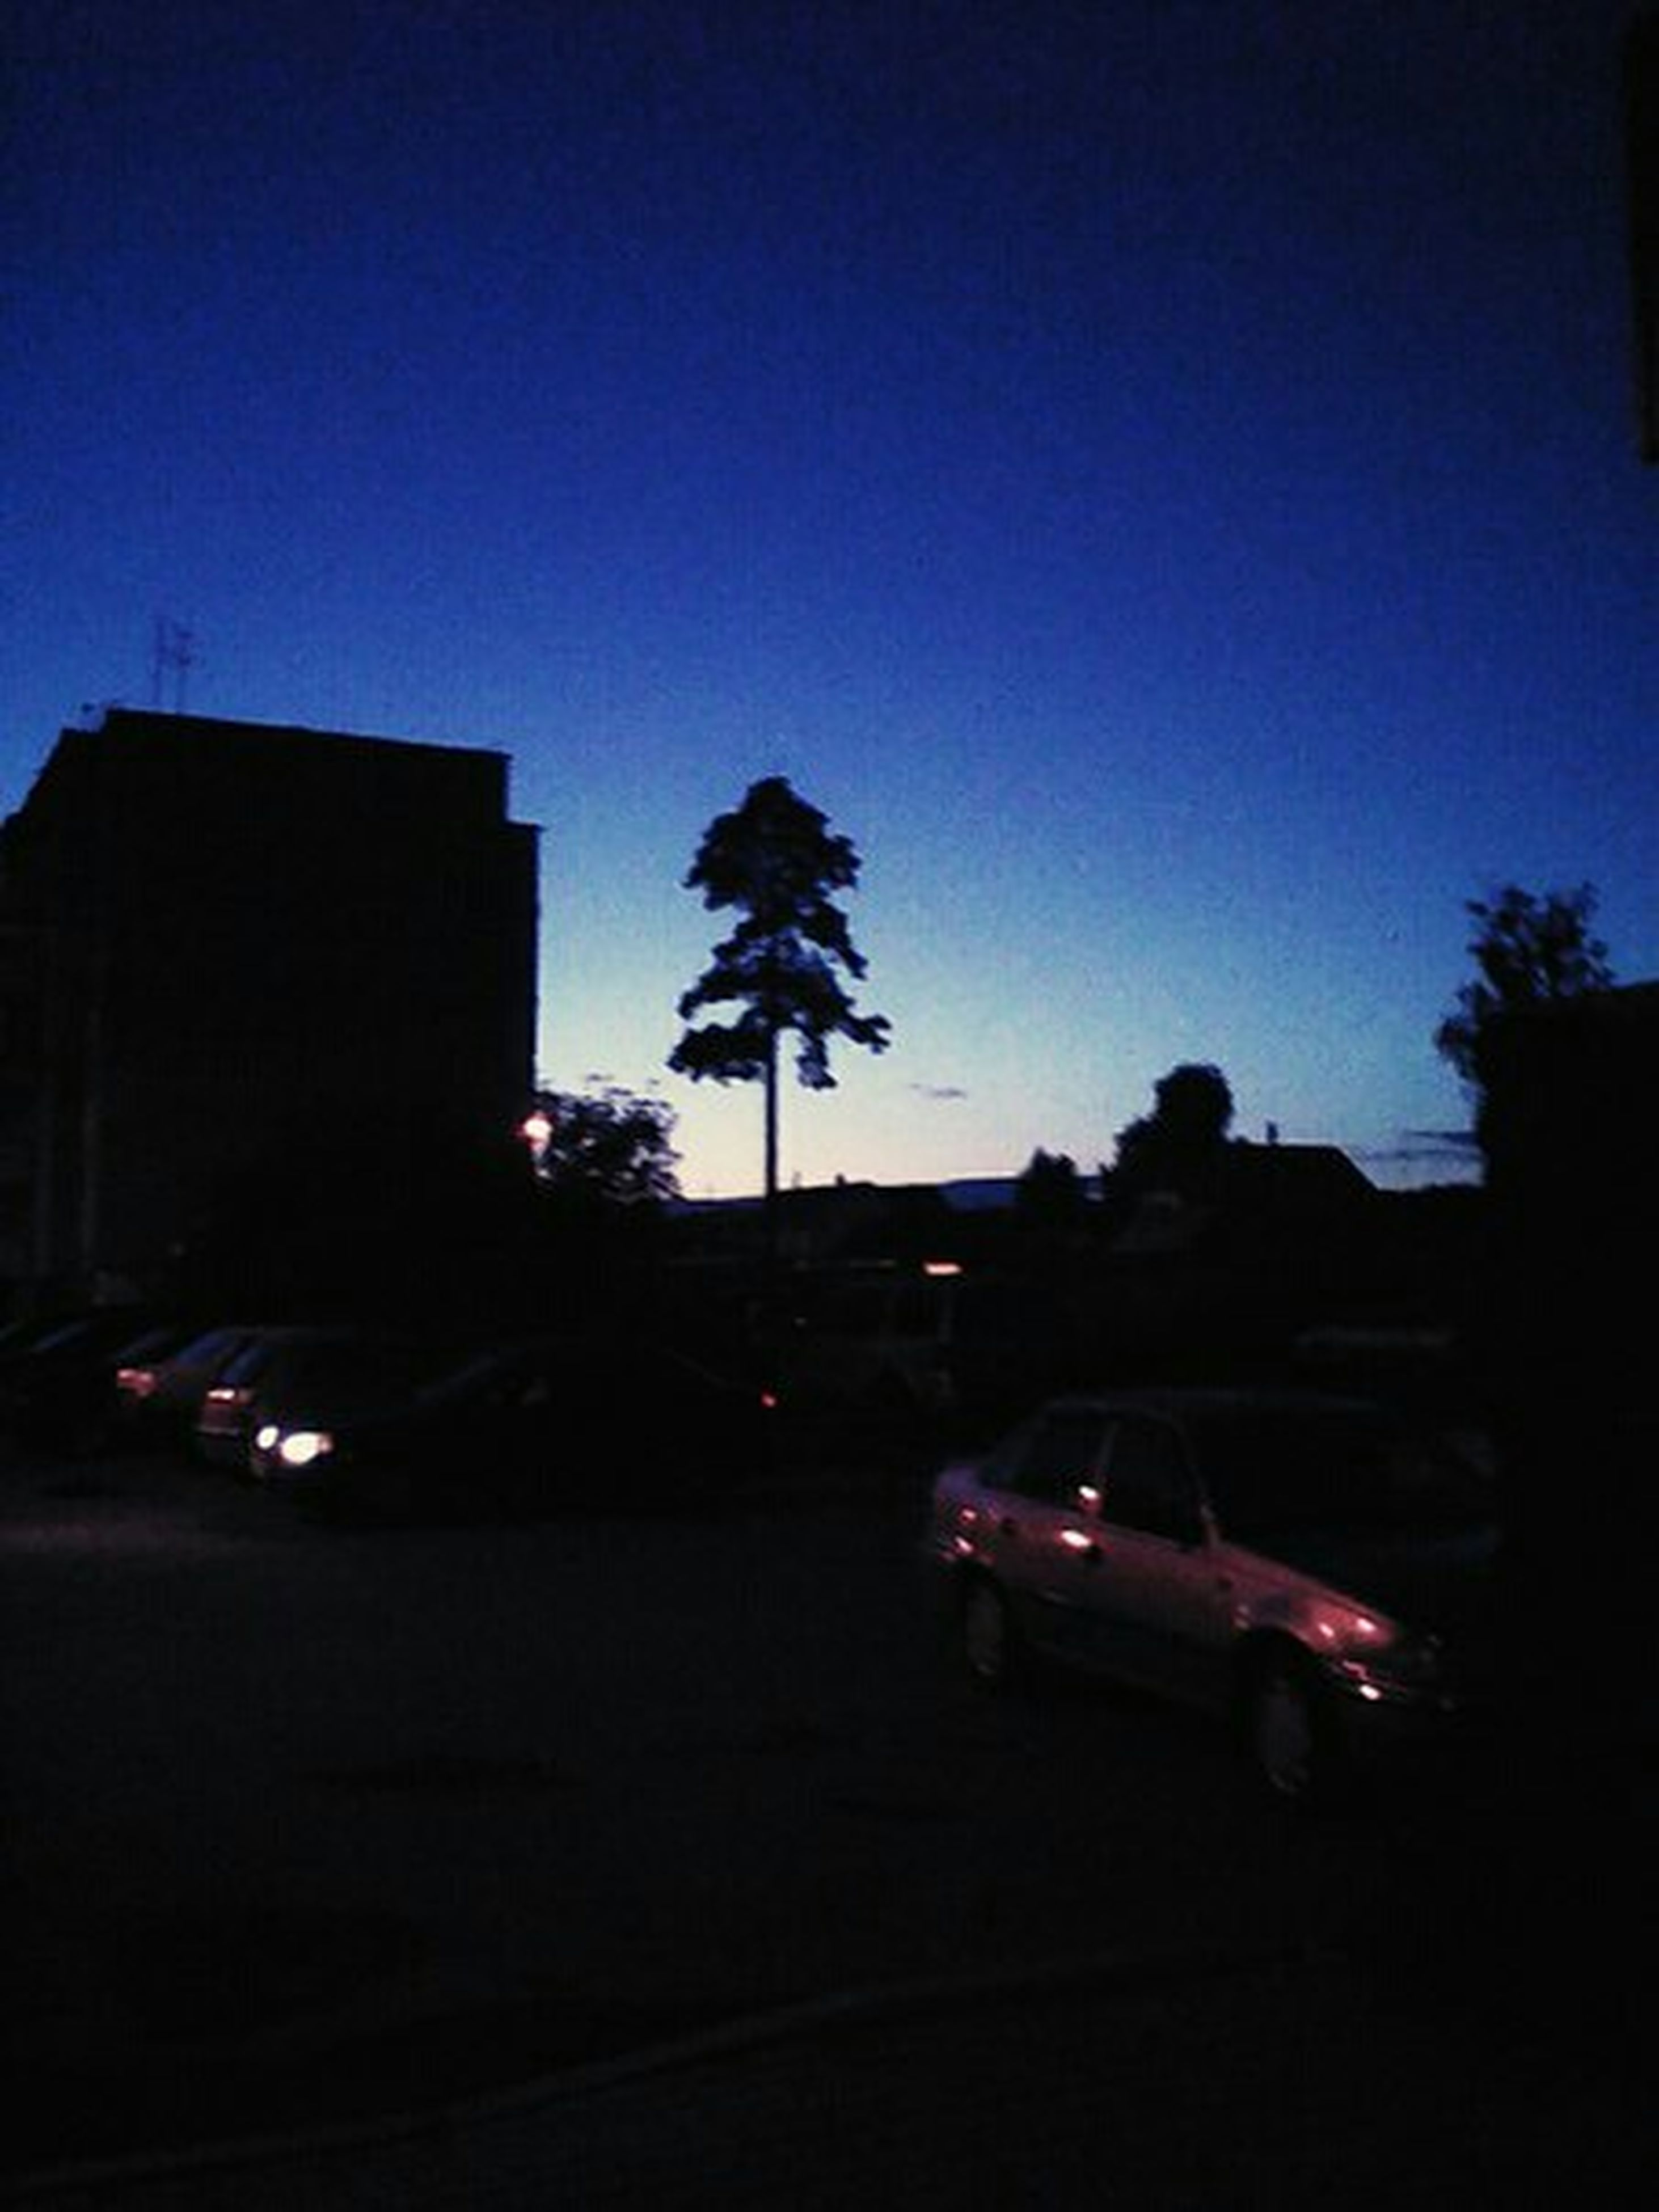 building exterior, tree, silhouette, illuminated, clear sky, car, architecture, built structure, palm tree, transportation, city, land vehicle, street, copy space, street light, road, sky, dusk, night, blue